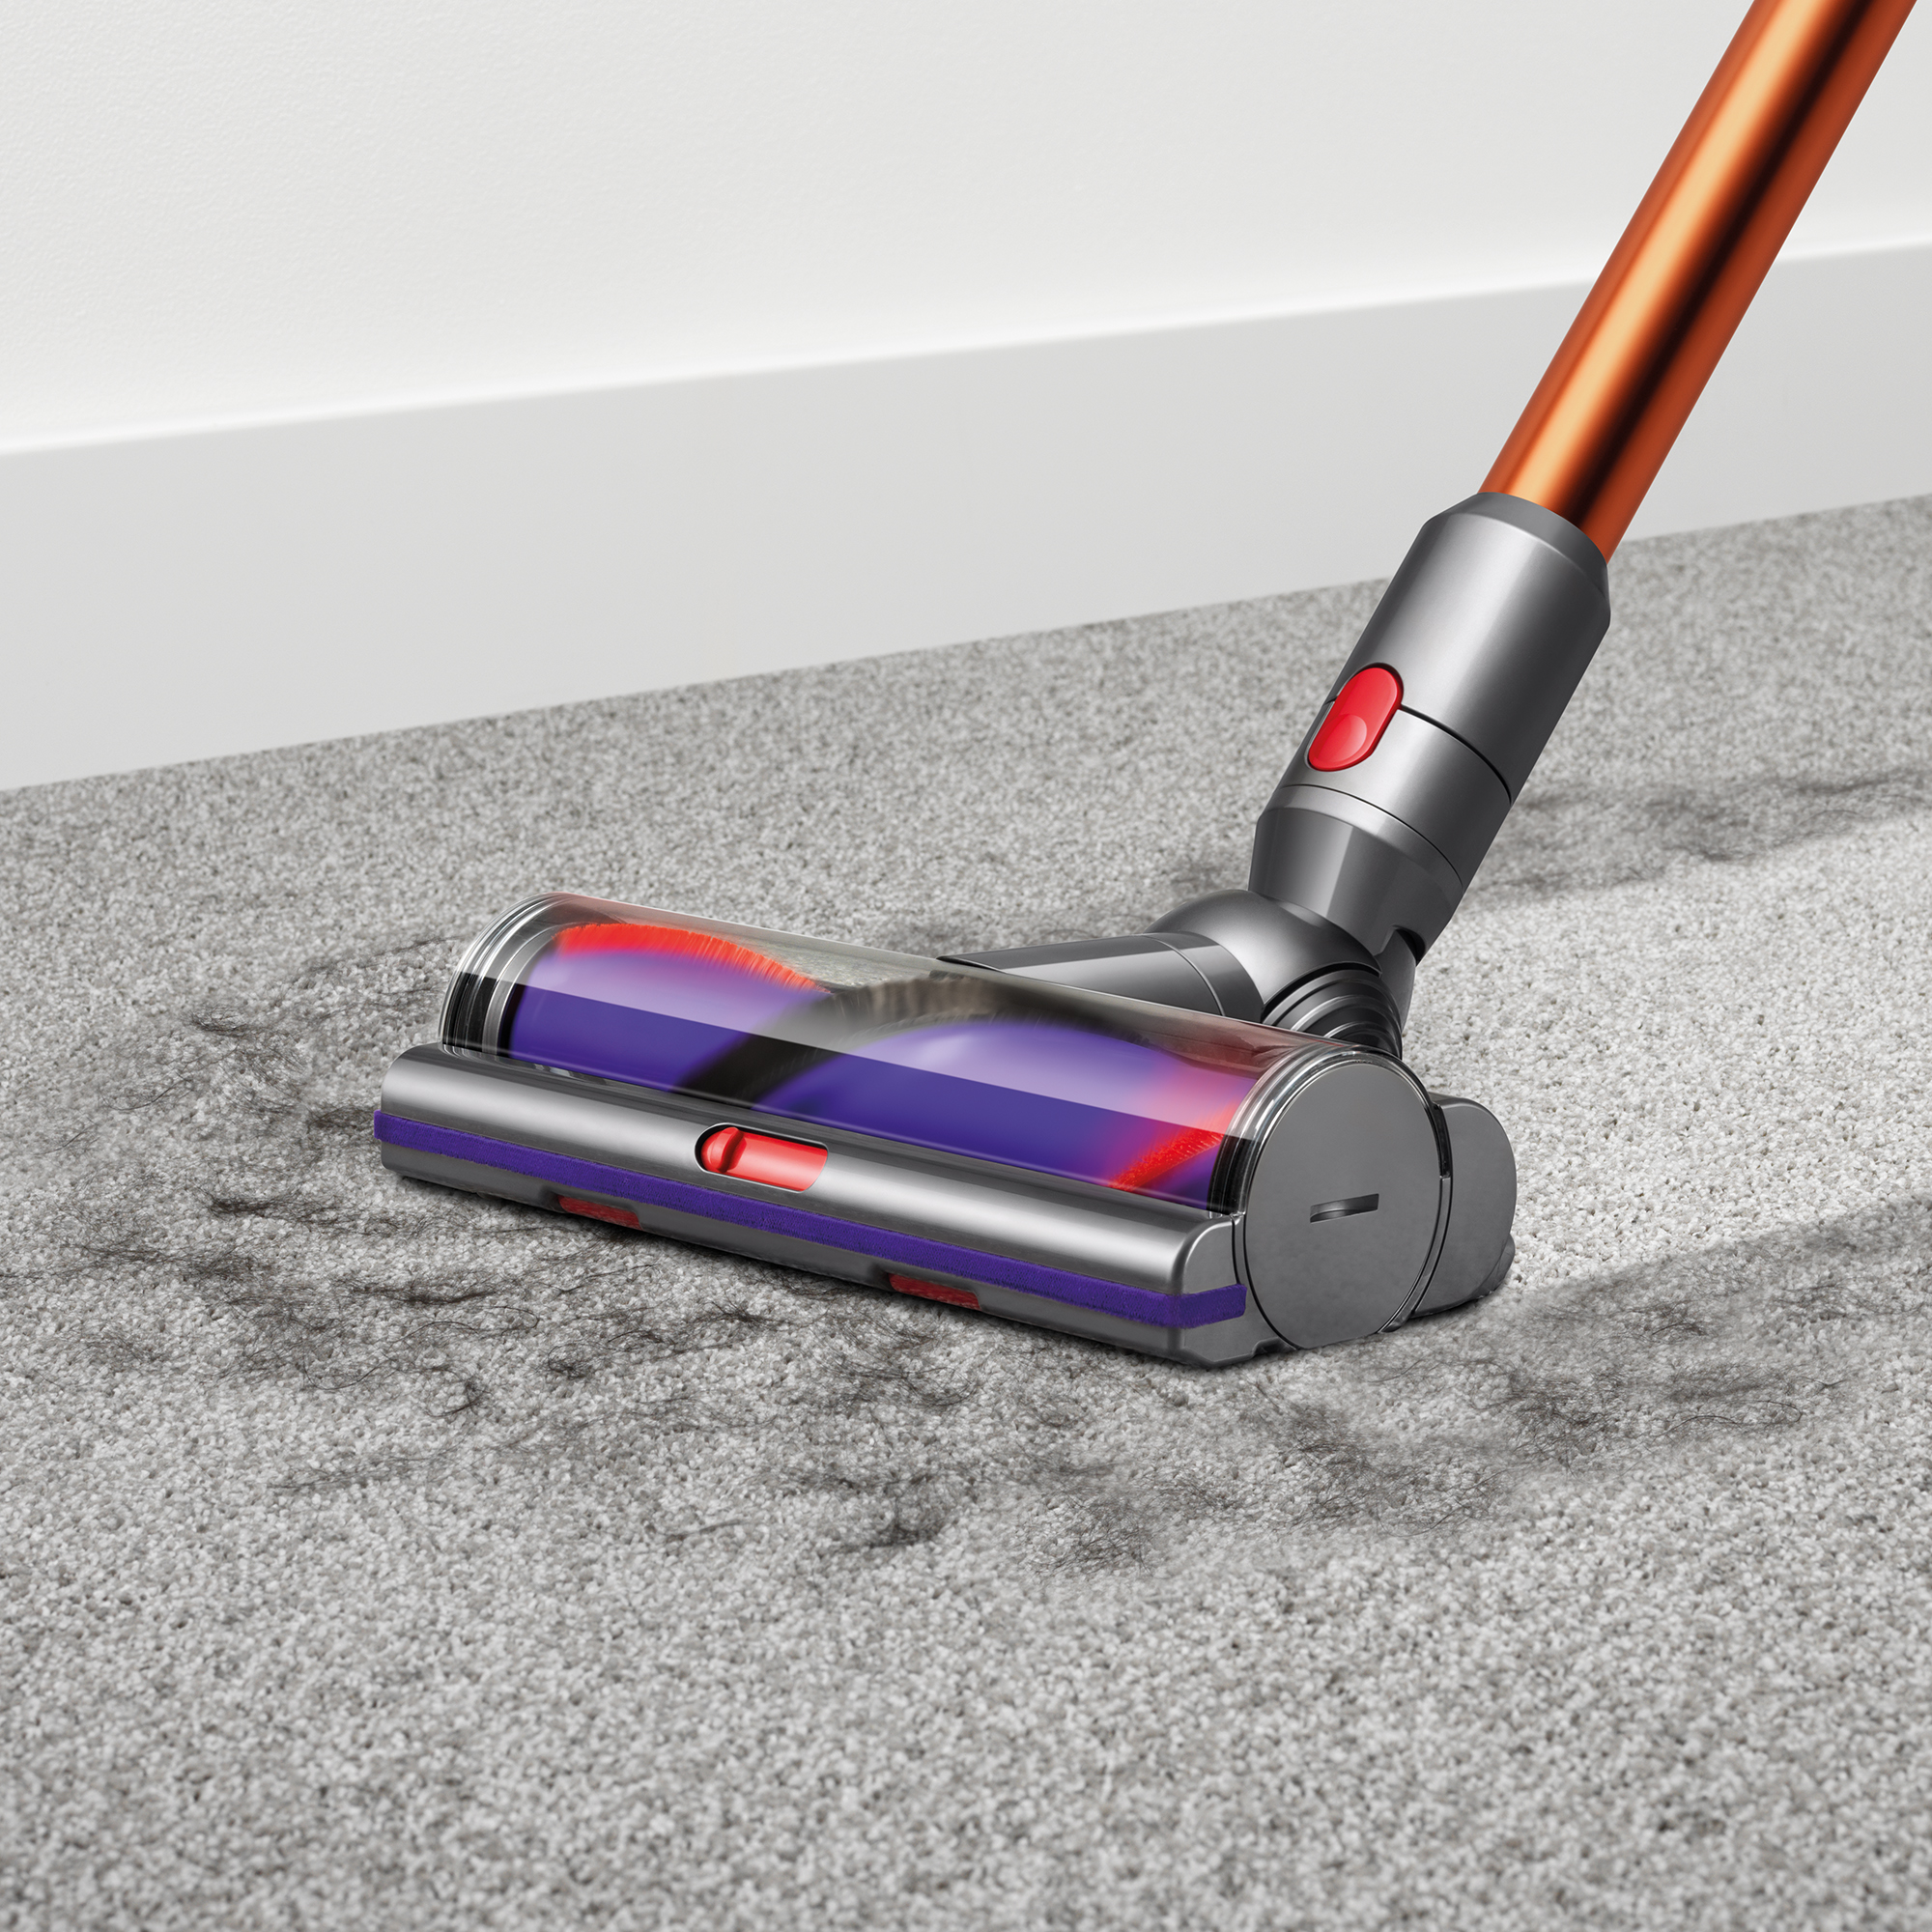 Dyson-V10-Absolute-Cordless-Vacuum-Cleaner-Refurbished thumbnail 21